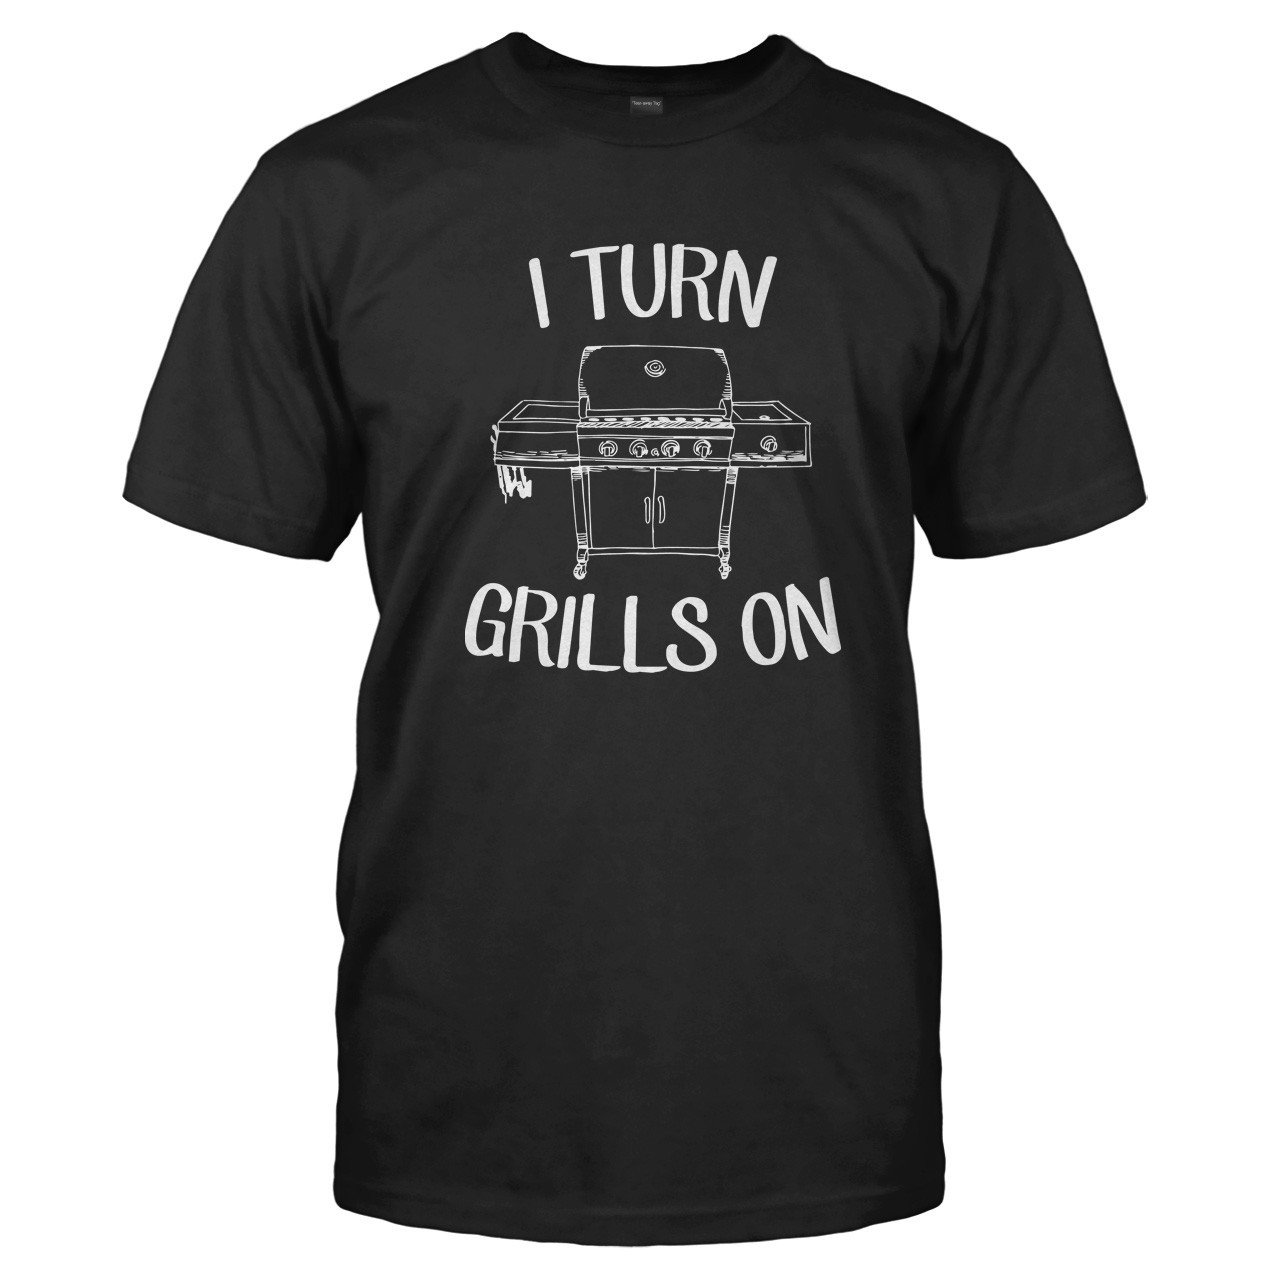 b5eb7b477f I Turn Grills On T-Shirts & Hoodies | I Love Apparel